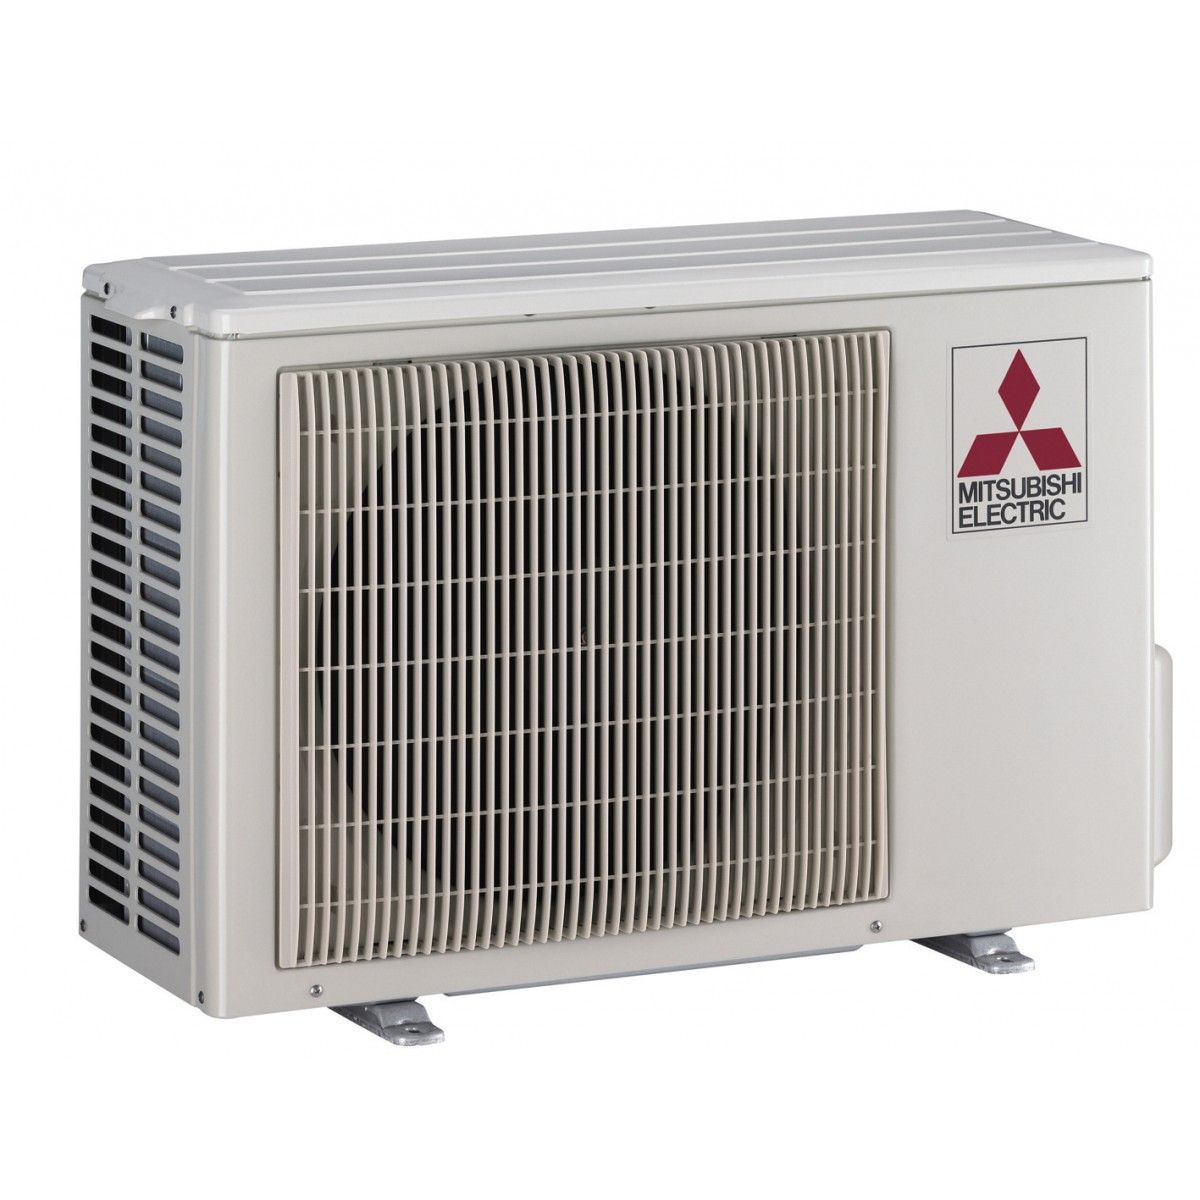 18k btu mitsubishi puza outdoor unit in ductless ac Ductless ac